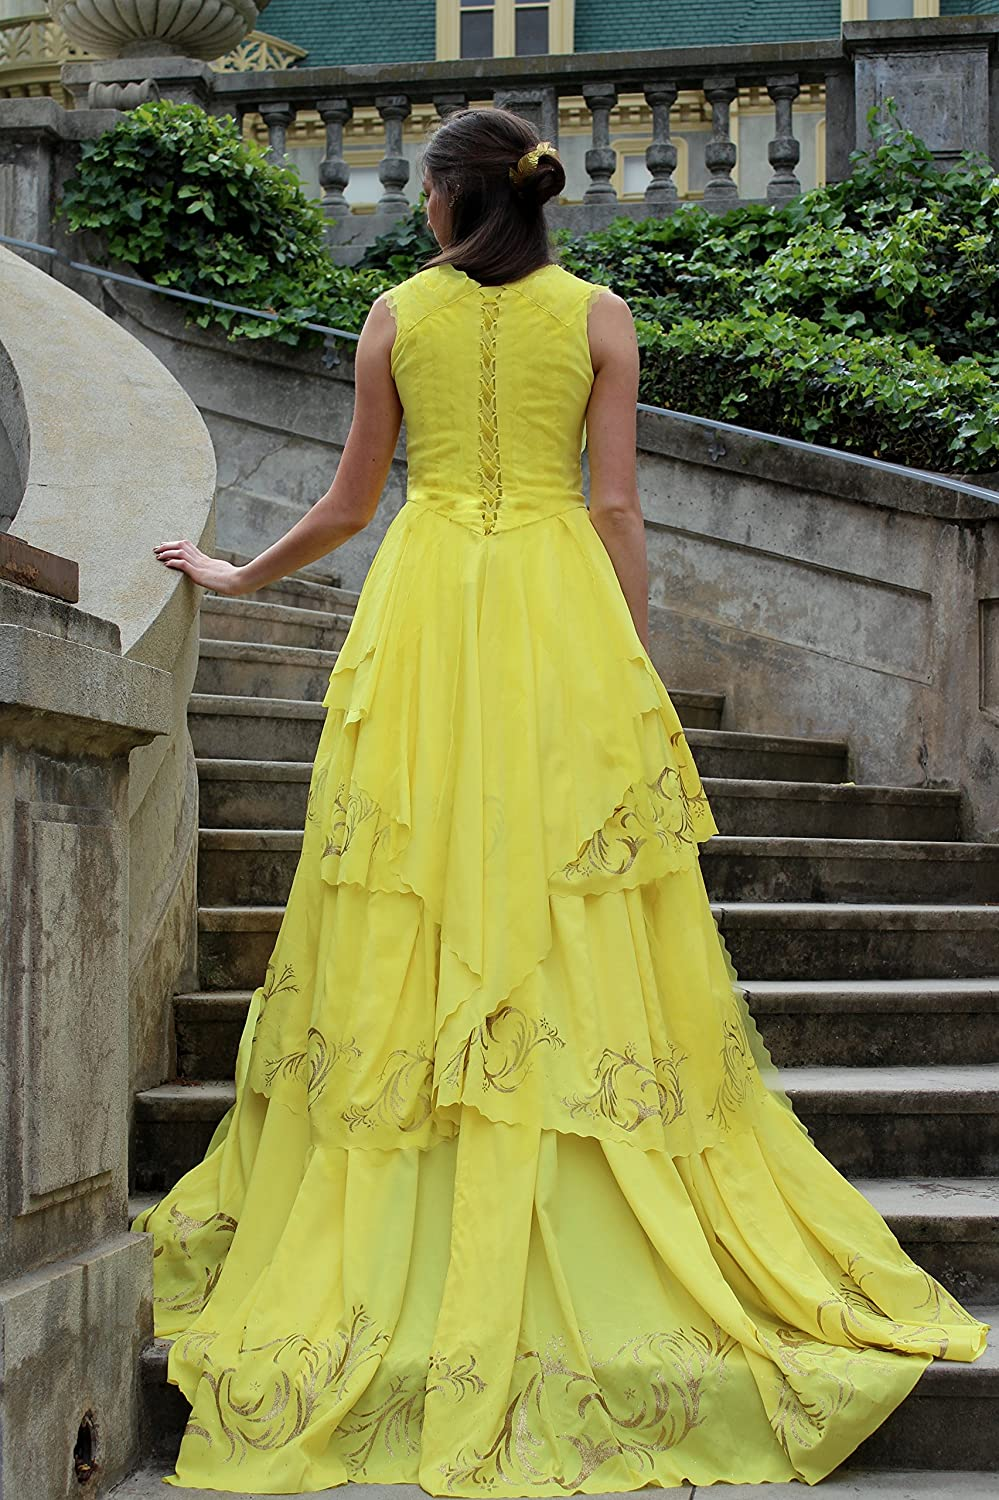 Belle Dress 2017 Beauty and the Beast Costume Emma Watson Party Ball Gown Adult